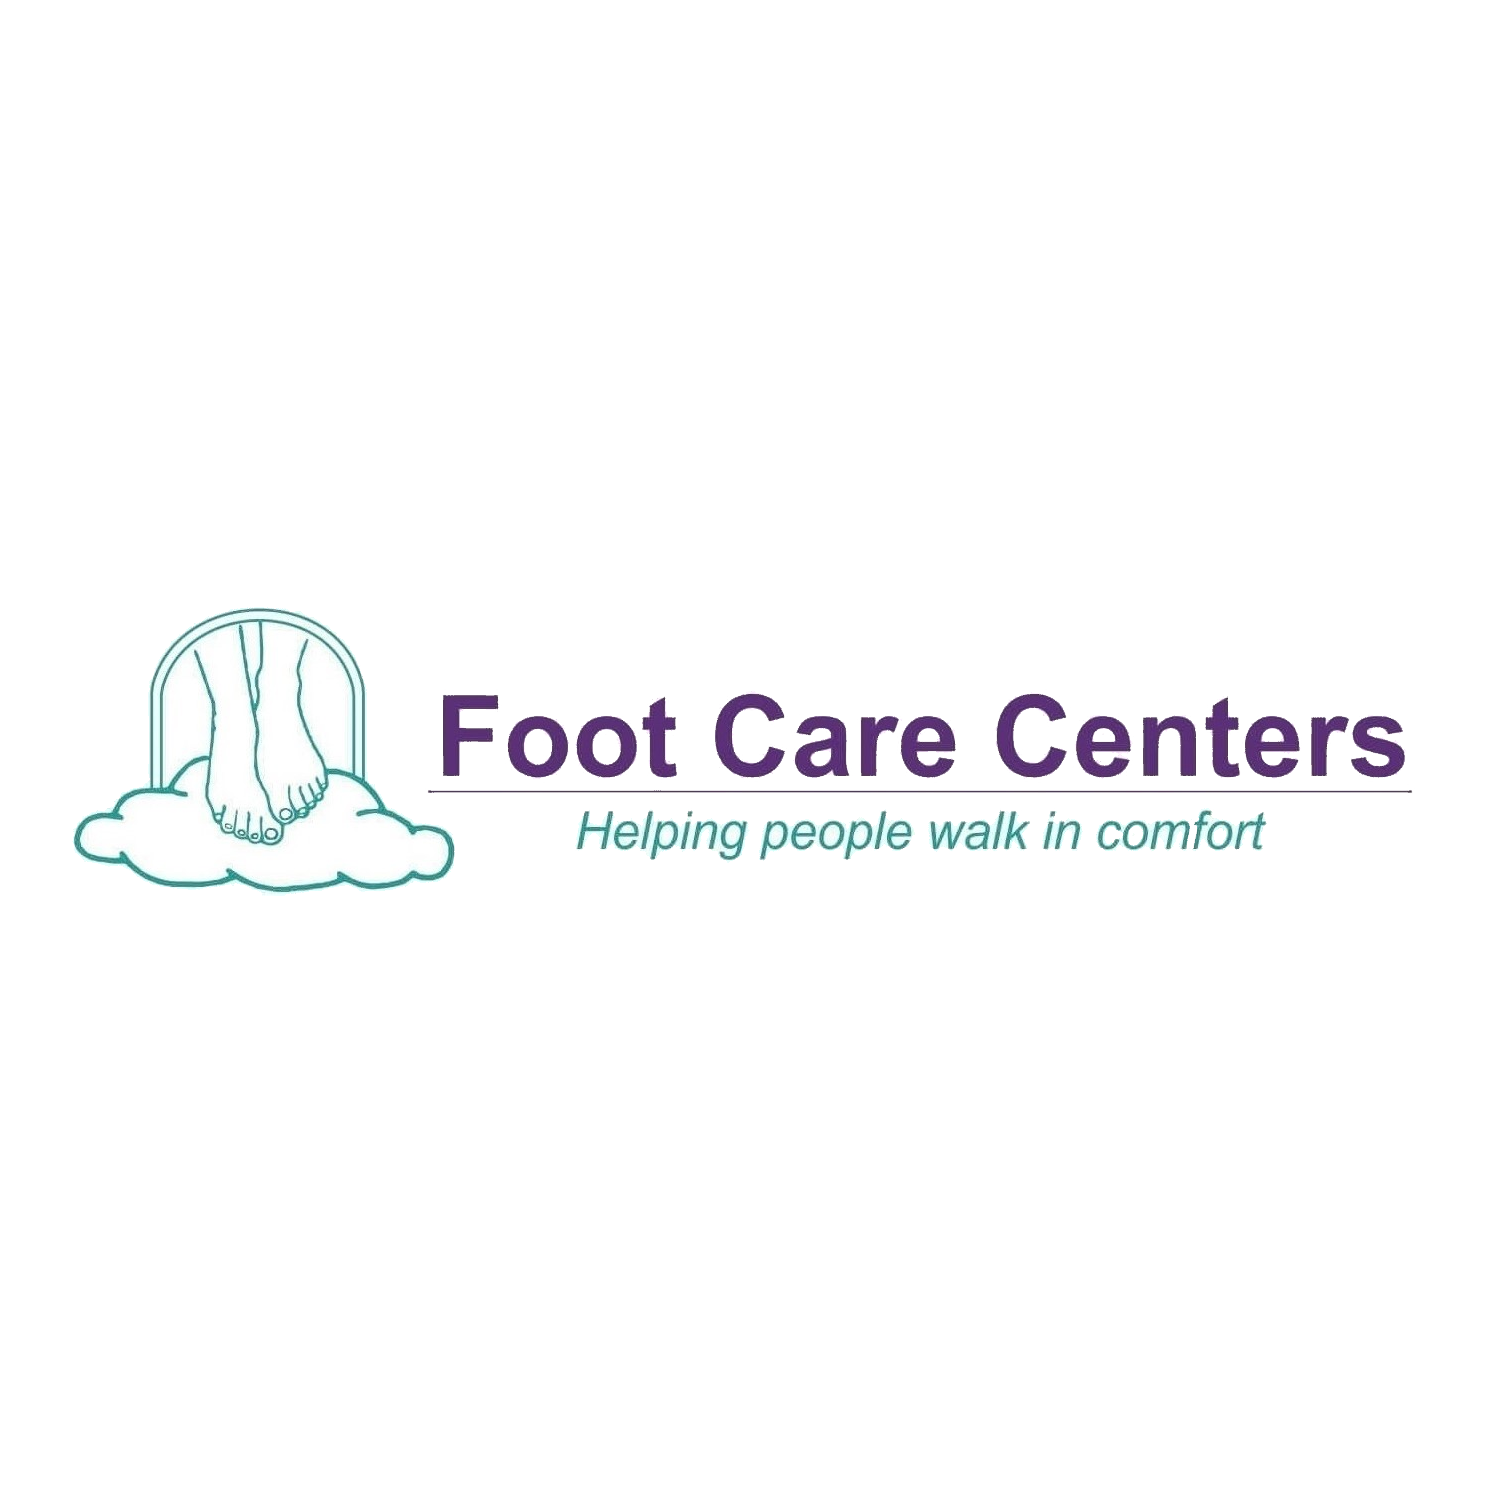 Foot Care Centers